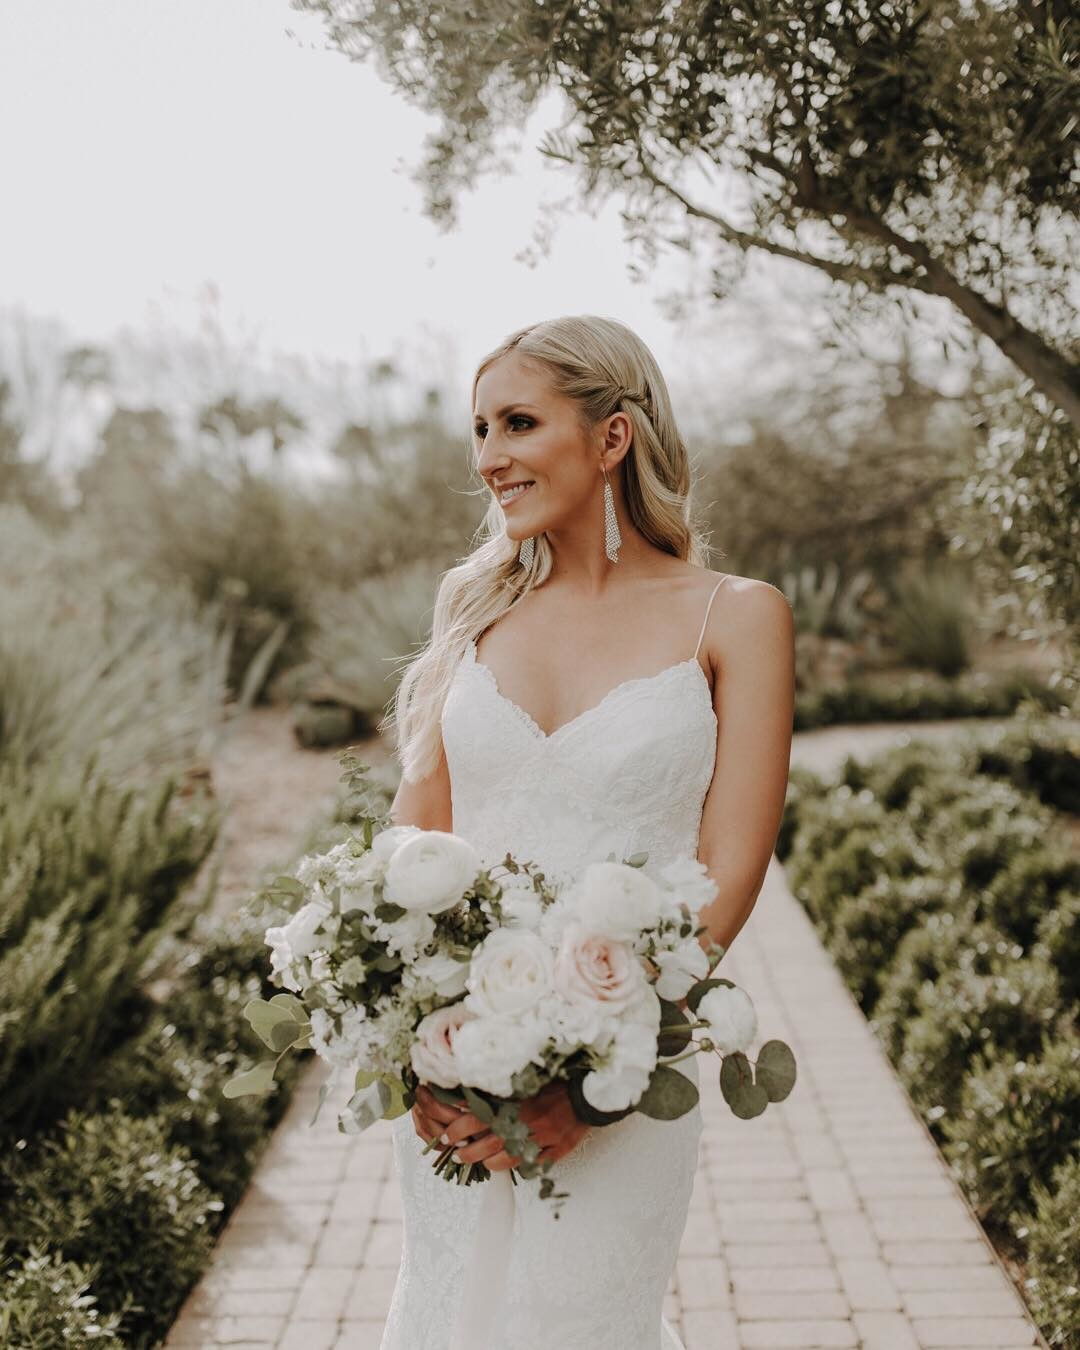 This bride, simply elegant, full of grace, and exceptionally stylish. It's always fun to see what a statement a neutral palette bouquet